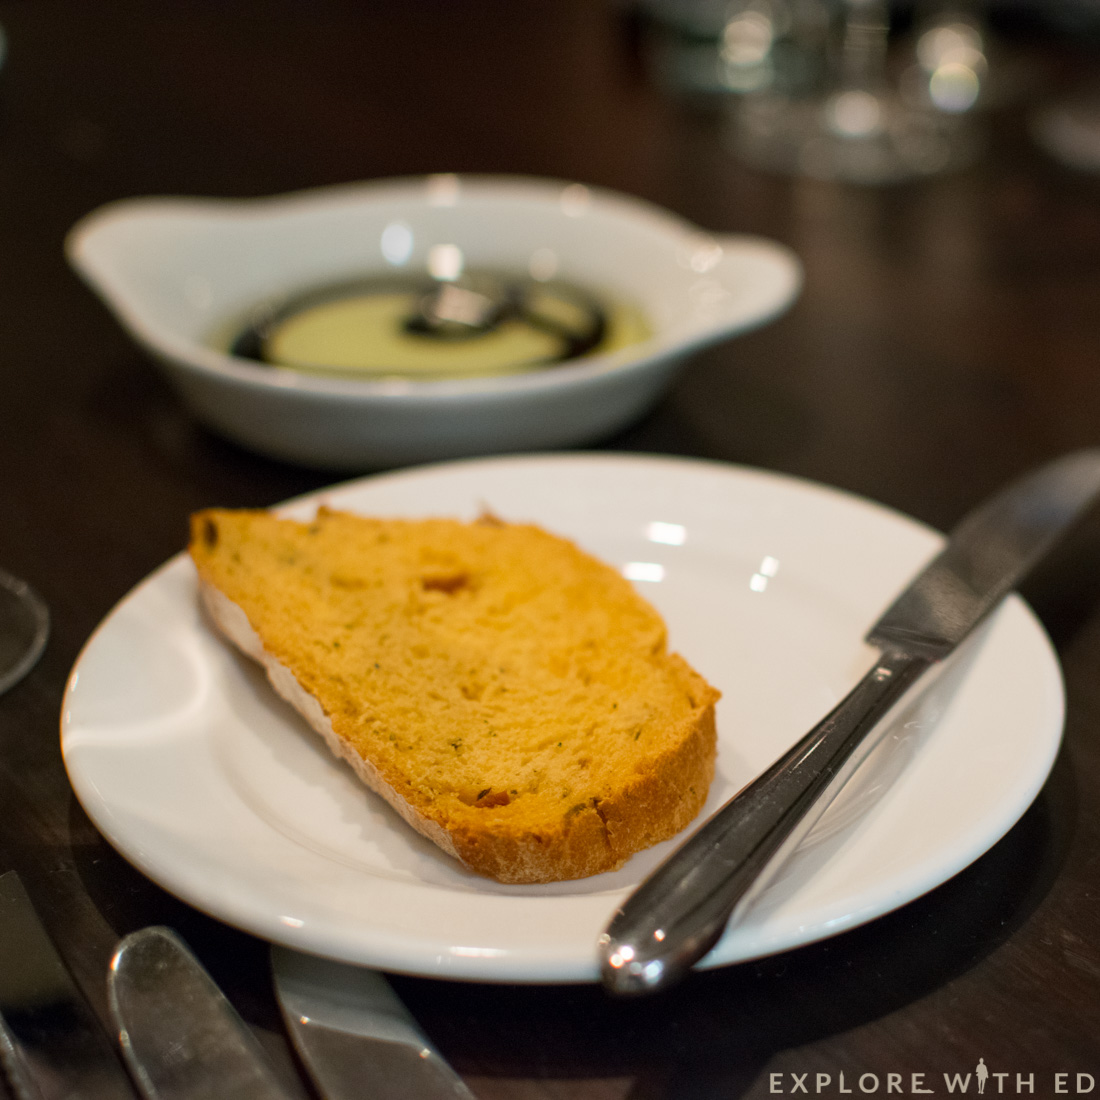 Tomato Bread and Dip, Laguna Kitchen & Bar